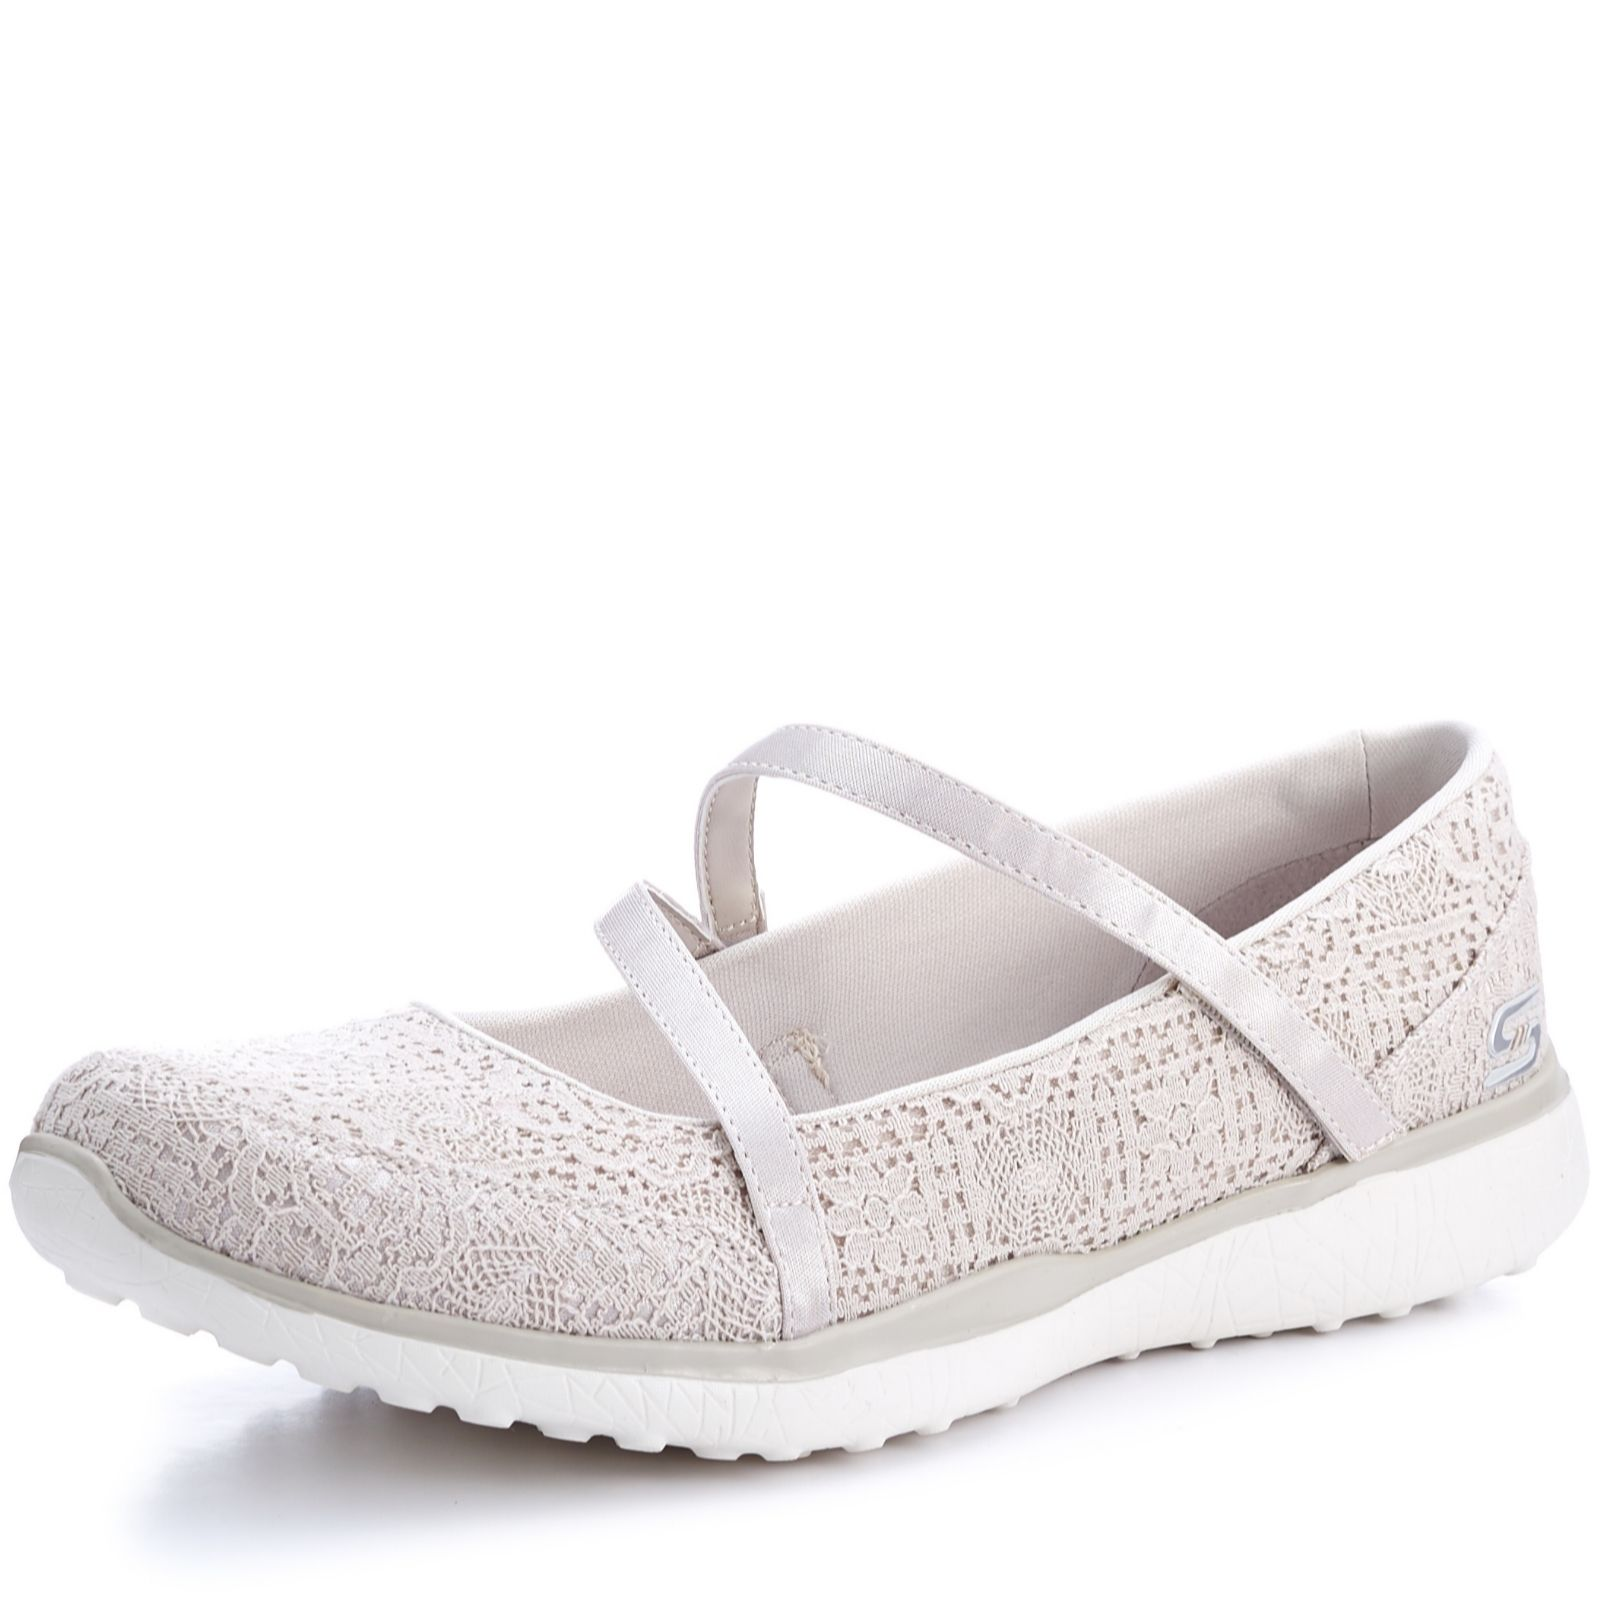 Skechers Microburst Pure Elegance Crochet Mary Jane Shoe - QVC UK bbeeab58d714